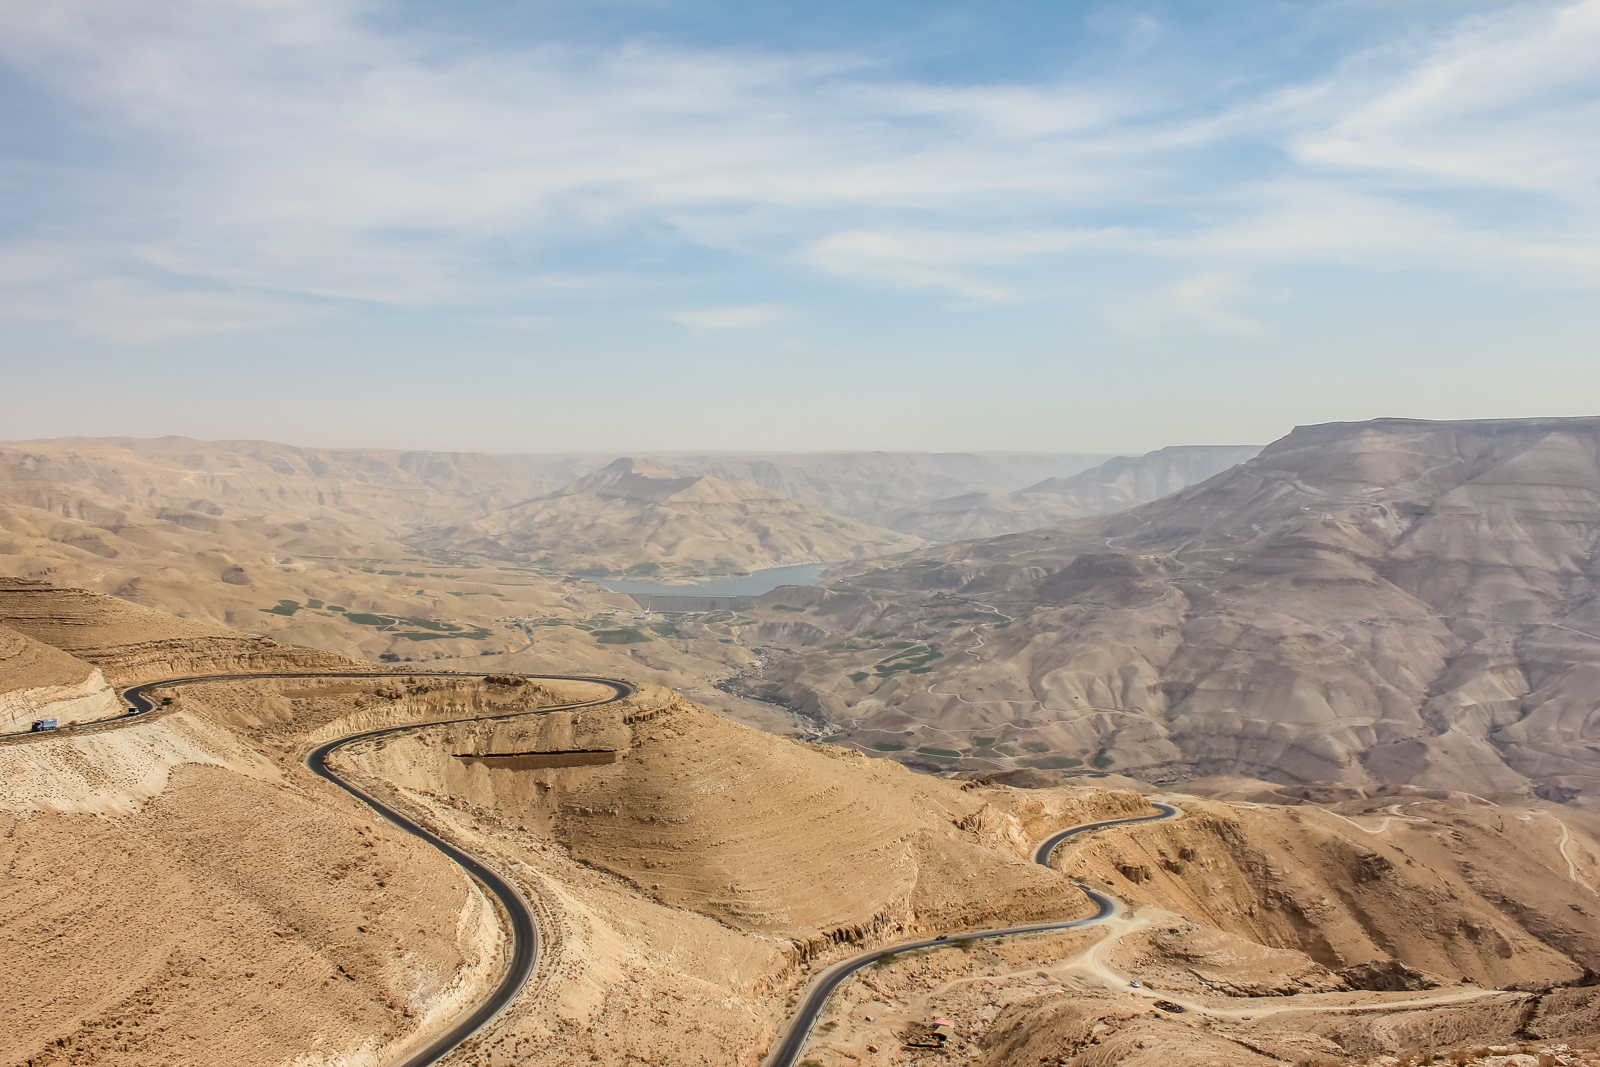 Jordan Itinerary - Wadi Mujib - Places to visit in Jordan